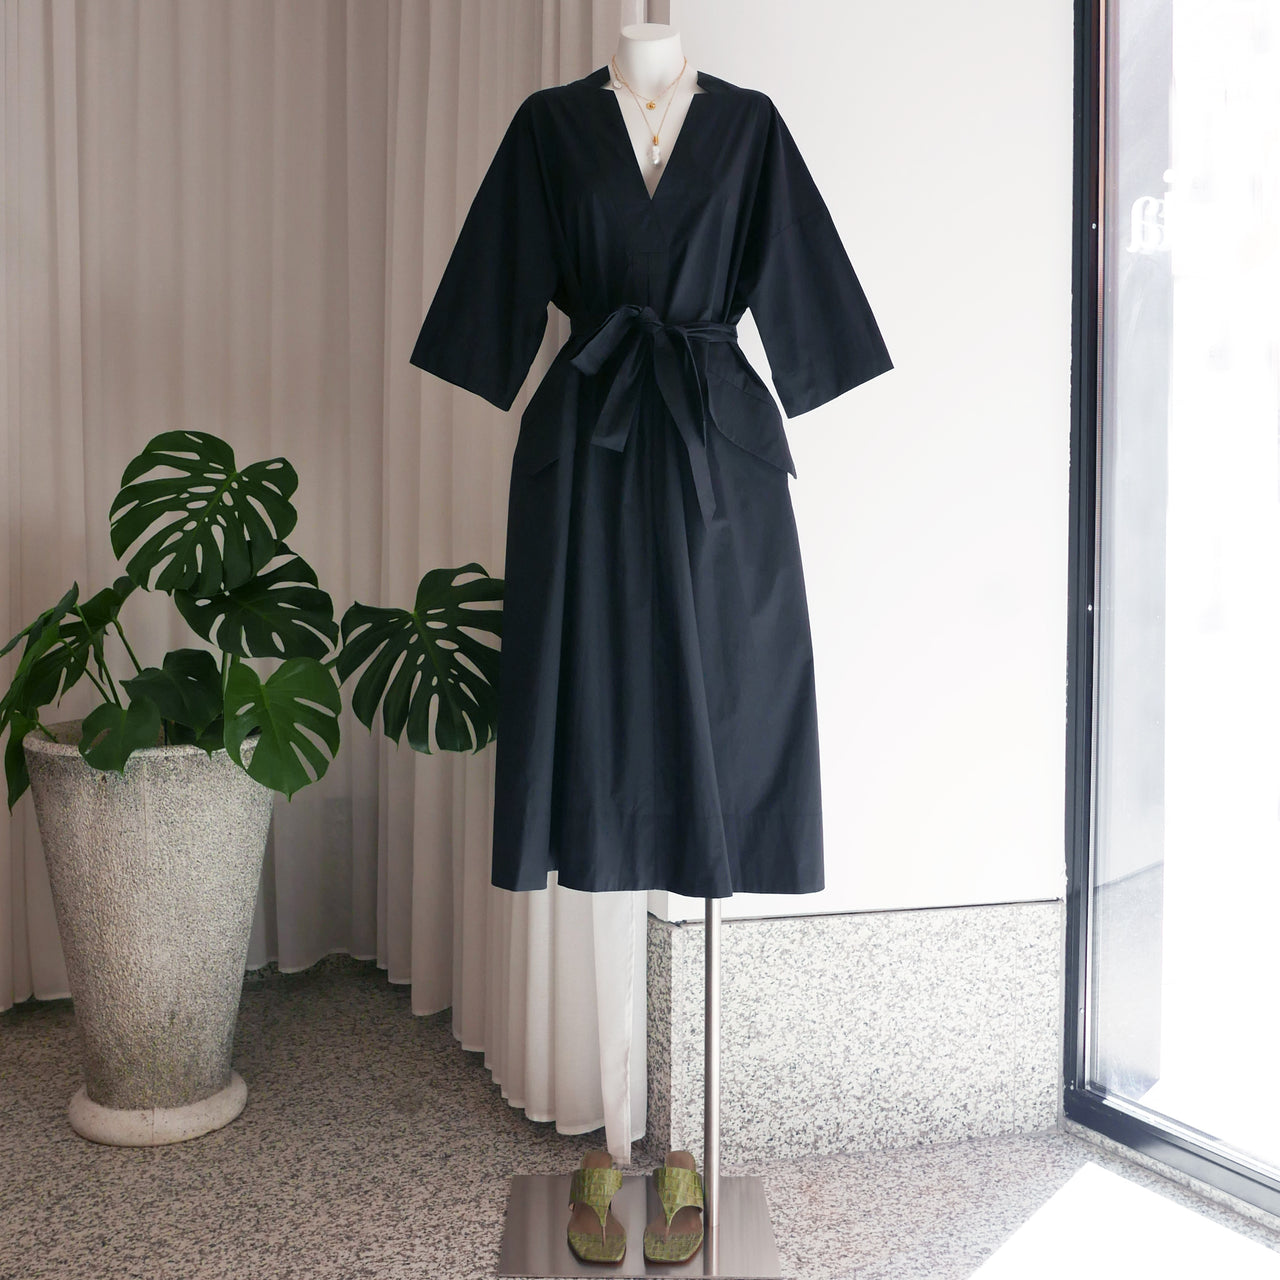 Copake Dress in Black Crisp